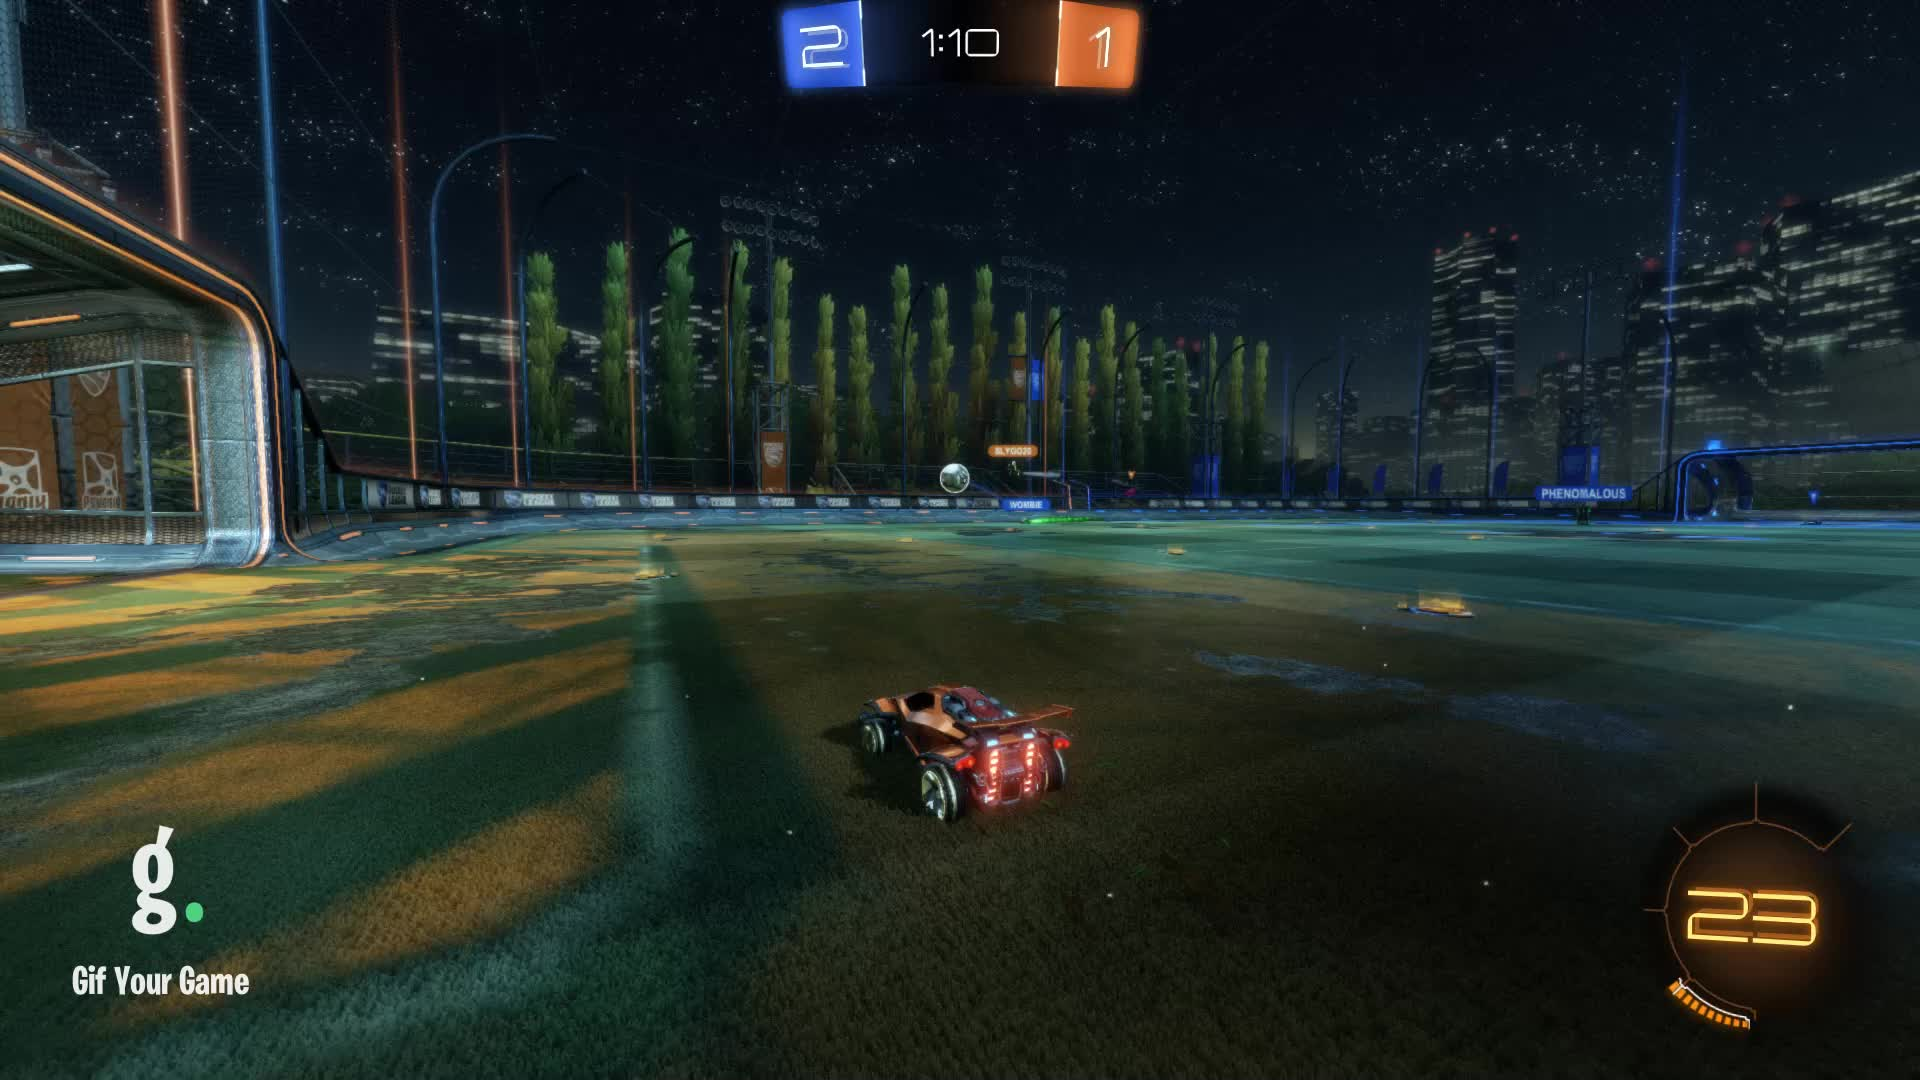 Gif Your Game, GifYourGame, ItWas...Justified, Rocket League, RocketLeague, Save, Save 7: ItWas...Justified GIFs